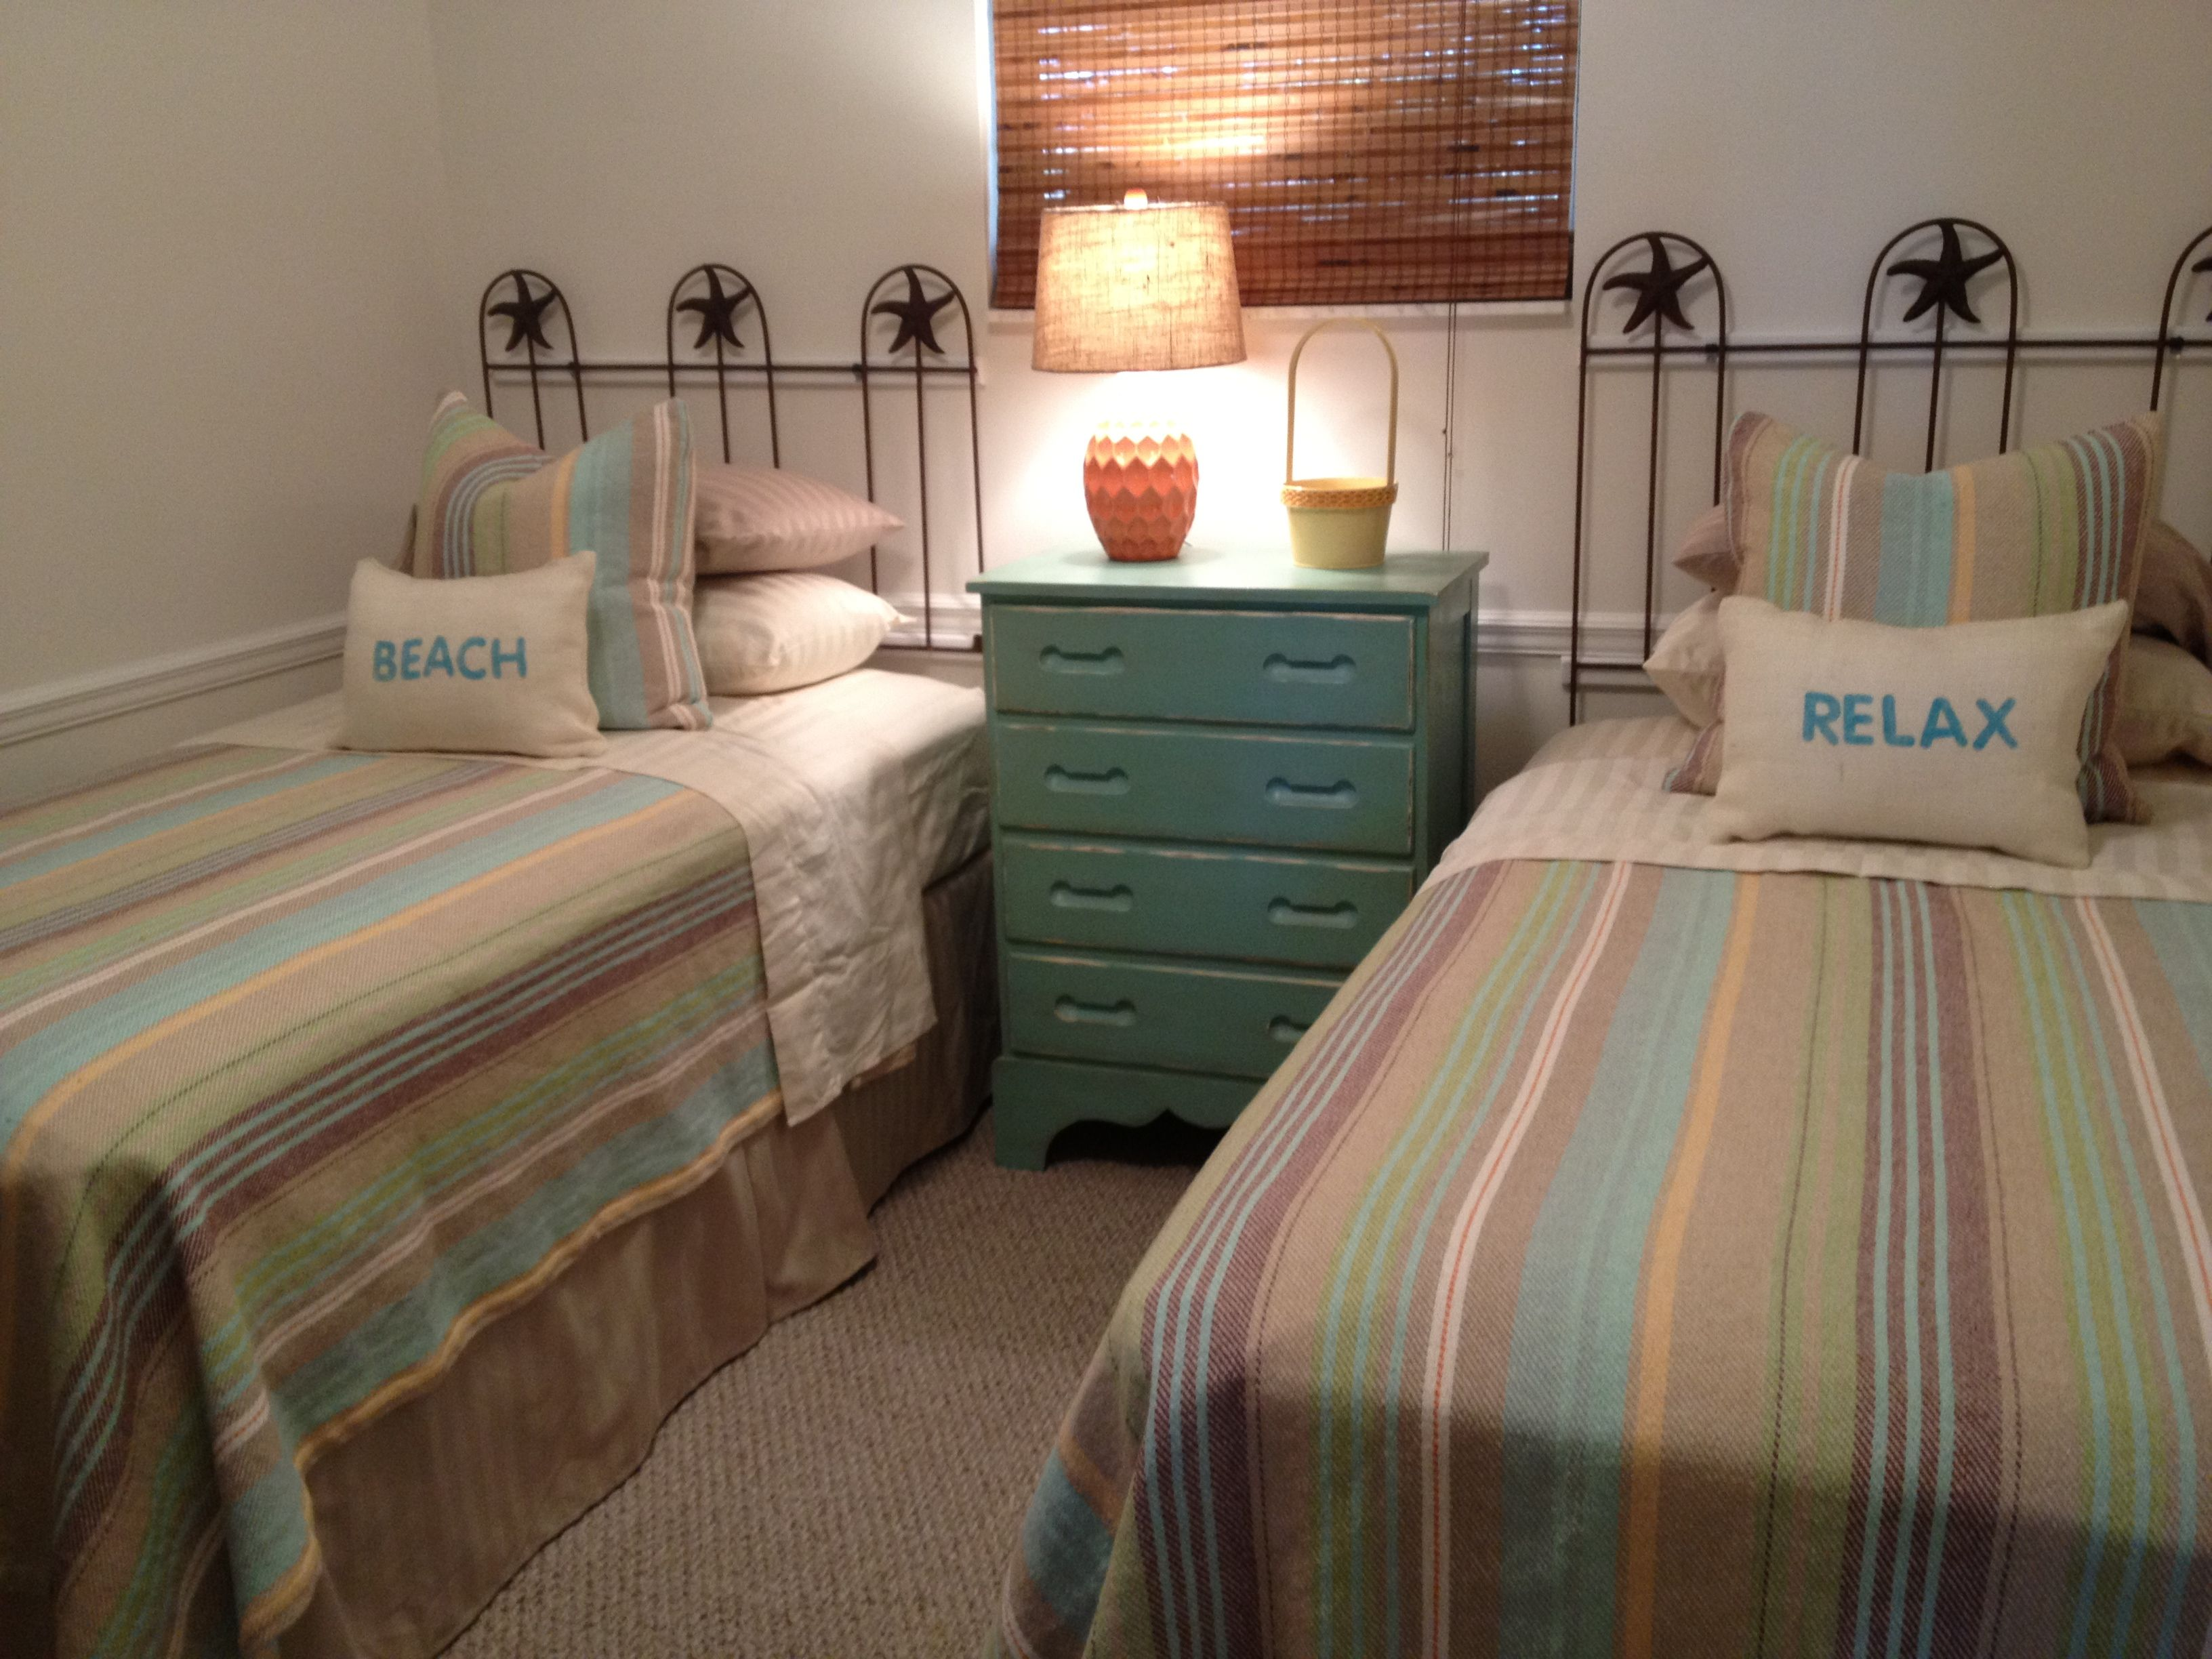 Beach house guest room with dash and albert throws for Dash and albert blanket